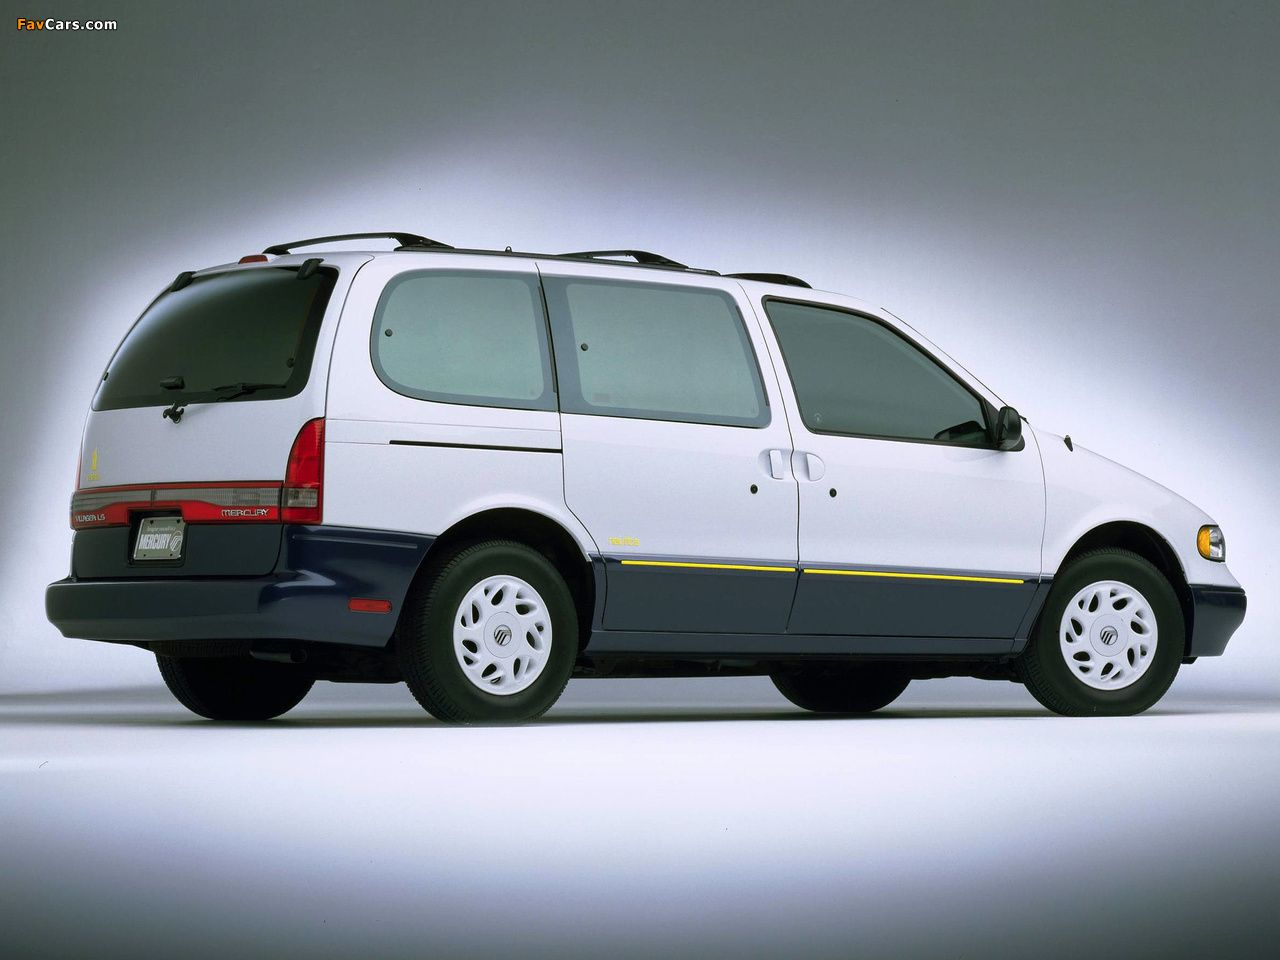 1997 Mercury Villager Nautica Mercury Villager Mini Van Mercury Cars